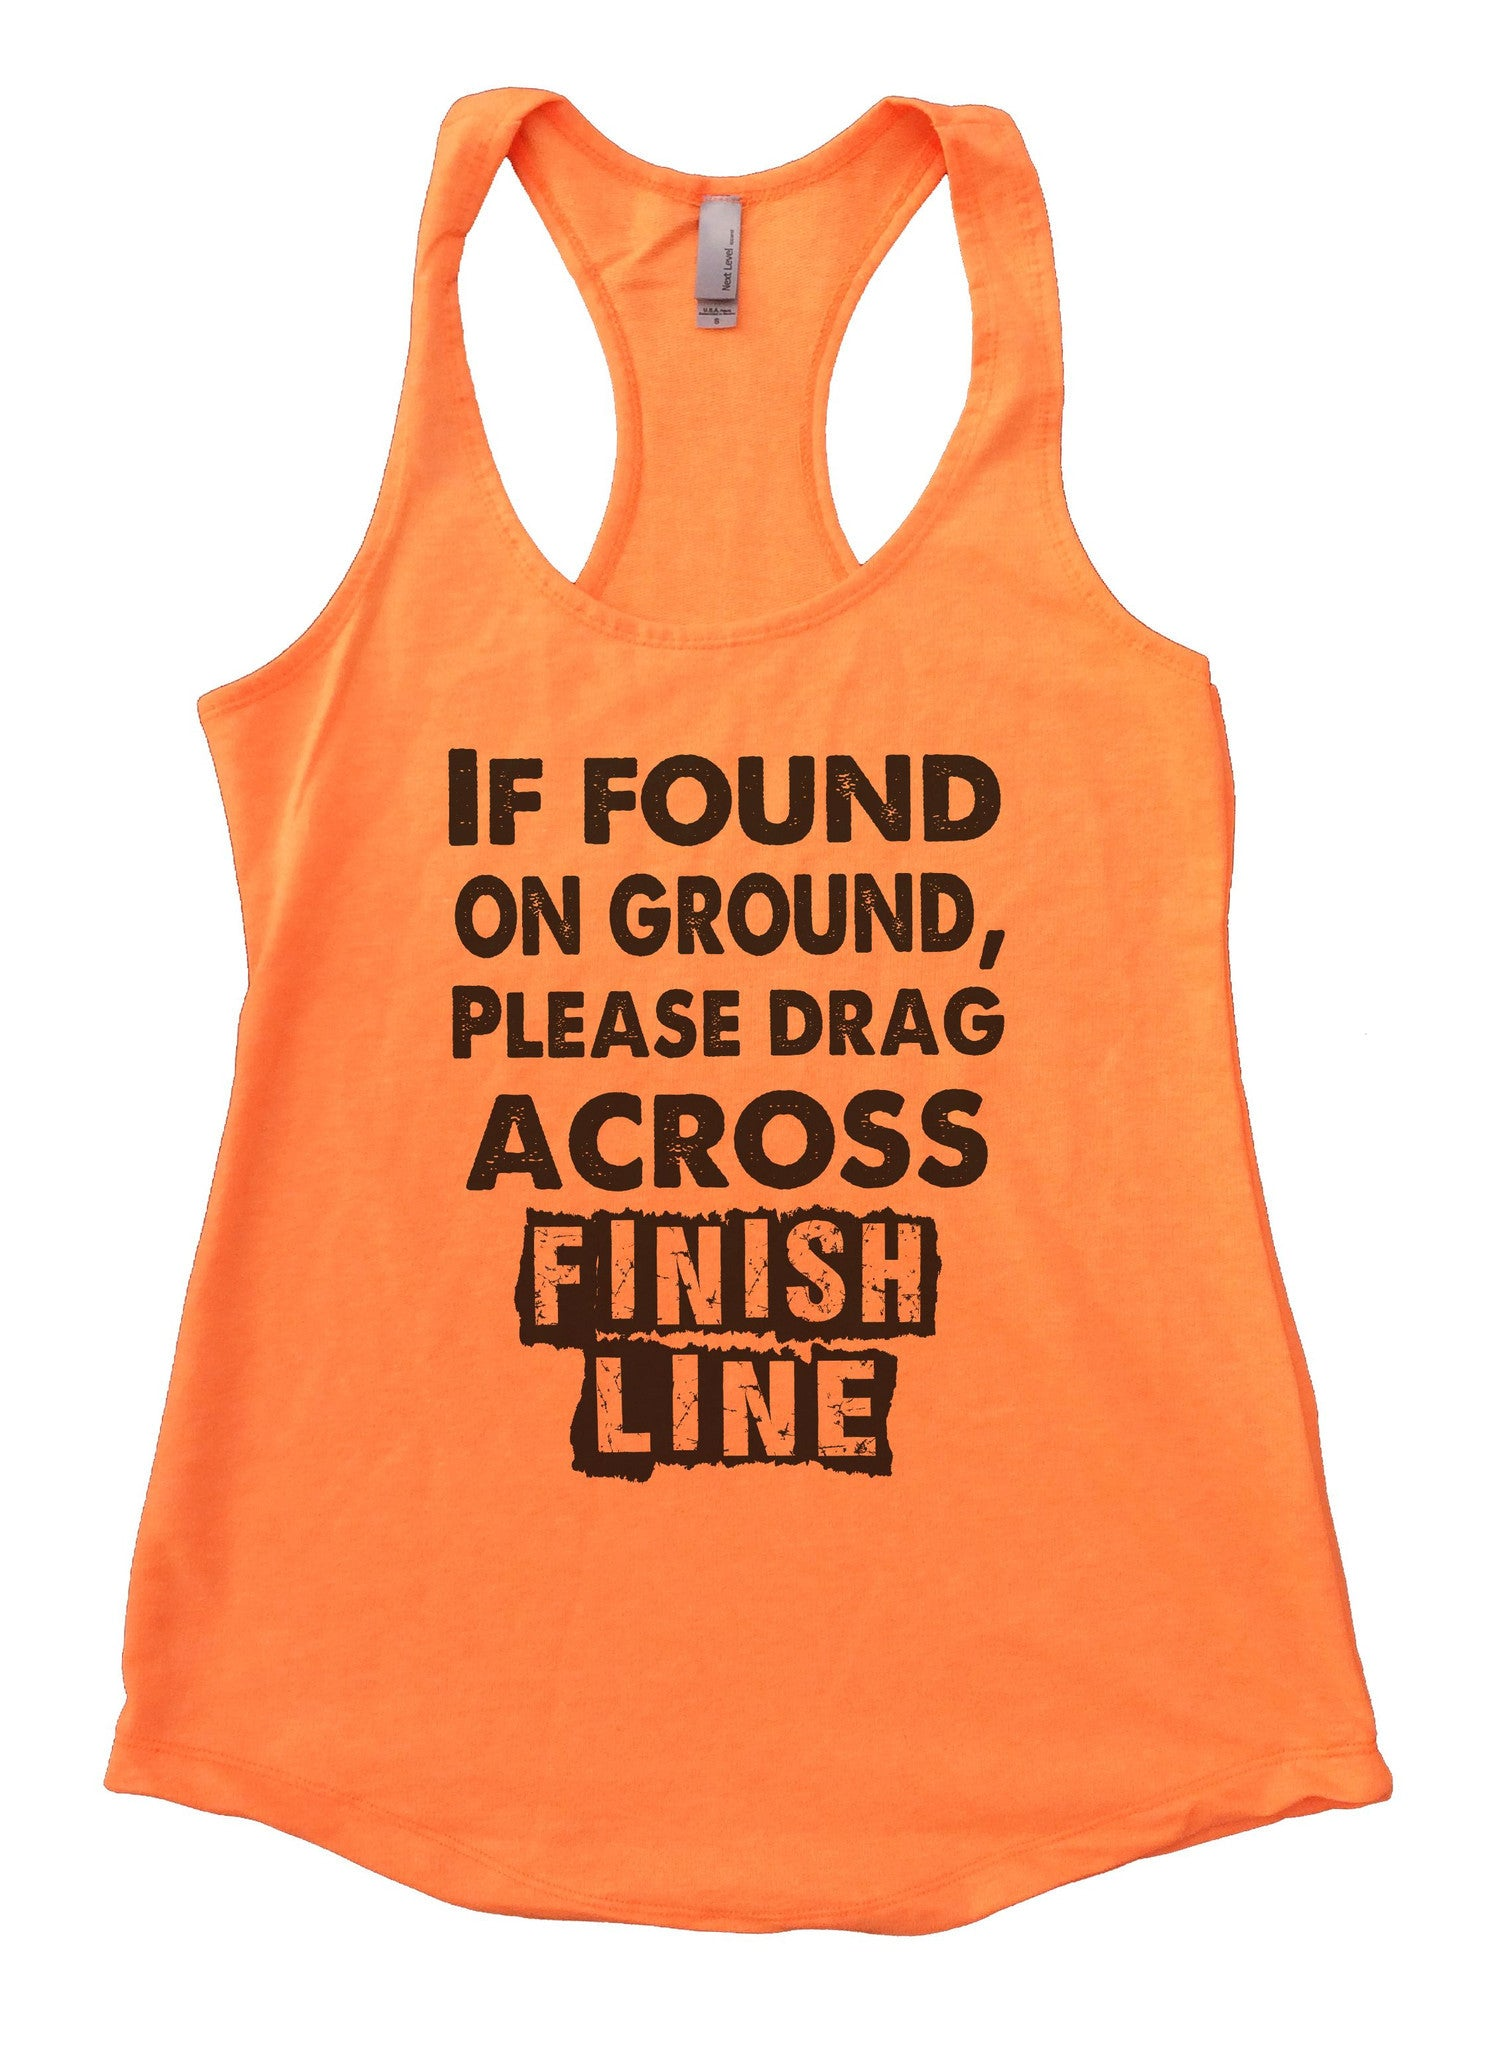 If Found On Ground, Please Drag Across Finish Line Womens Workout Tank Top F667 - Funny Shirts Tank Tops Burnouts and Triblends  - 5